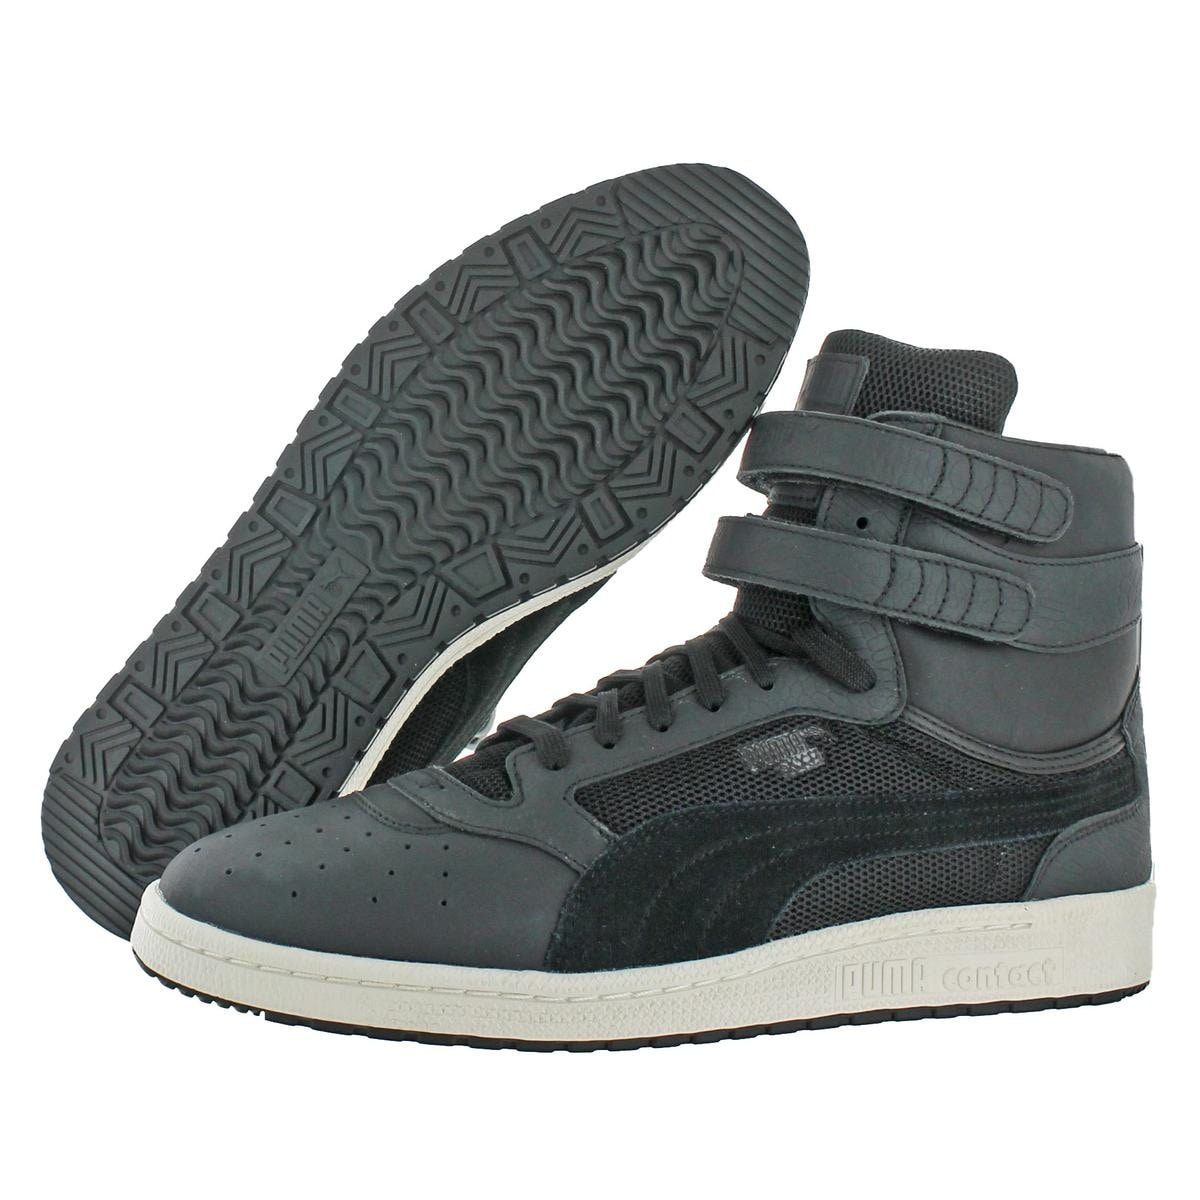 Looks - Shoes Puma for men high top black video